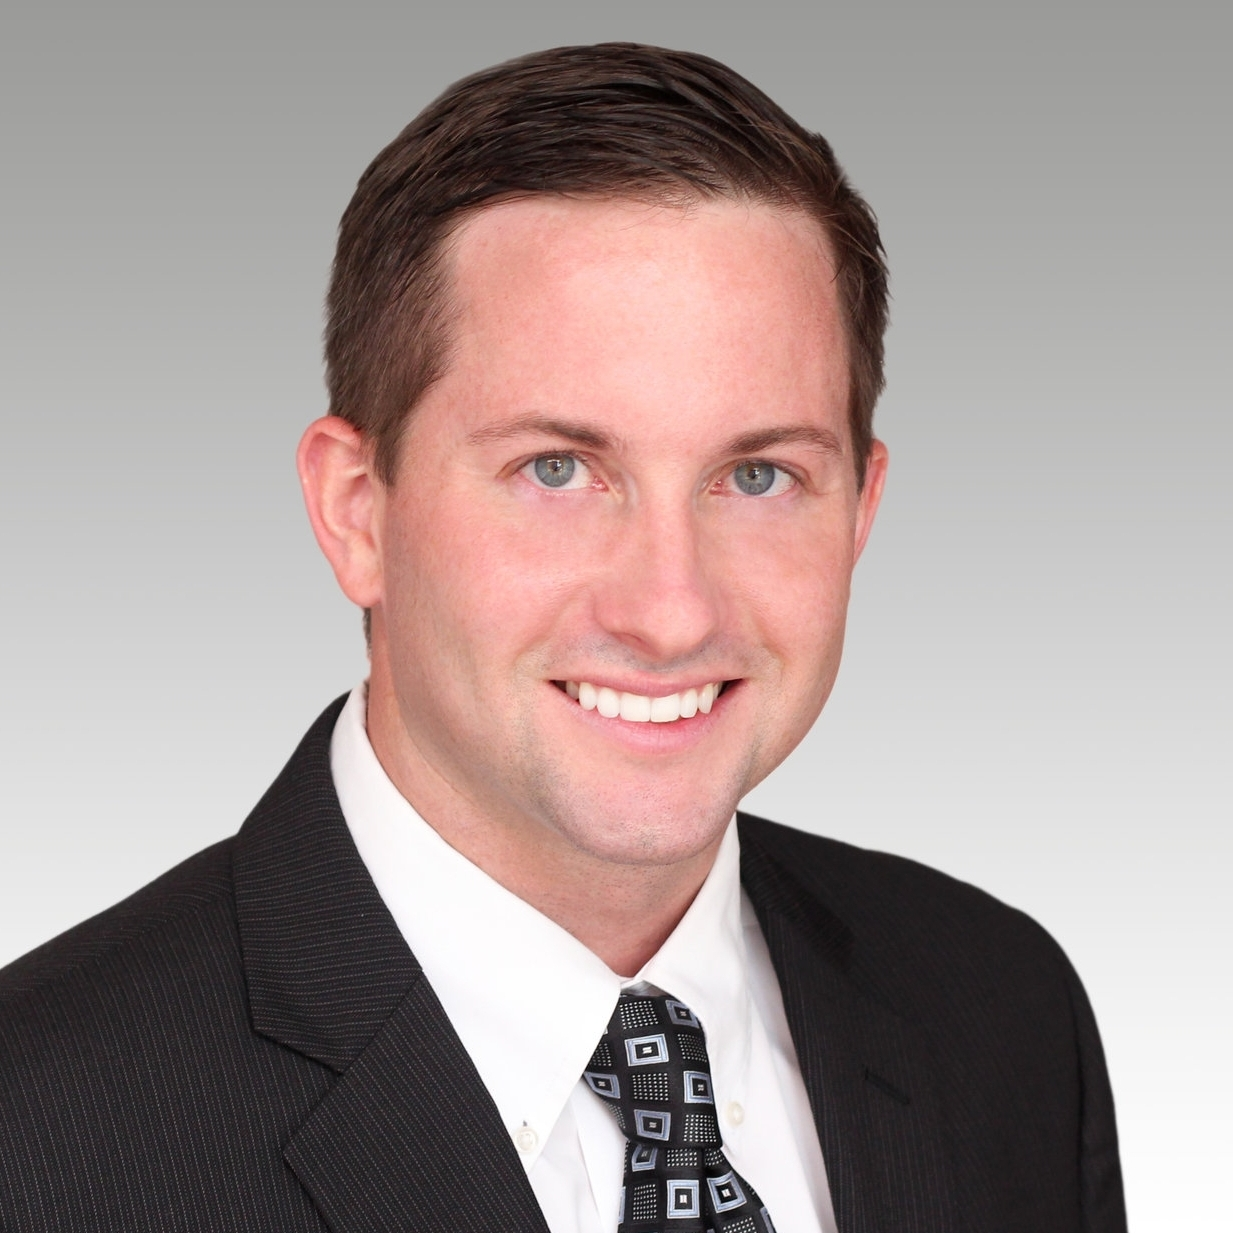 Daniel J. McCann, Esq. VP - Business Development    Mobile: 609-957-0846 EMail:  dan@boardwalkss.com    Dan is a licensed attorney in the State of New Jersey.  After graduating from law school, Dan clerked for a Superior Court Judge in Cape May County and then opened his own practice.Before law school, Dan was a third-generation licensed New Jersey real estate agent.A lifetime Cape May County local, Dan brings a wealth of knowledge from all seats at a closing table.